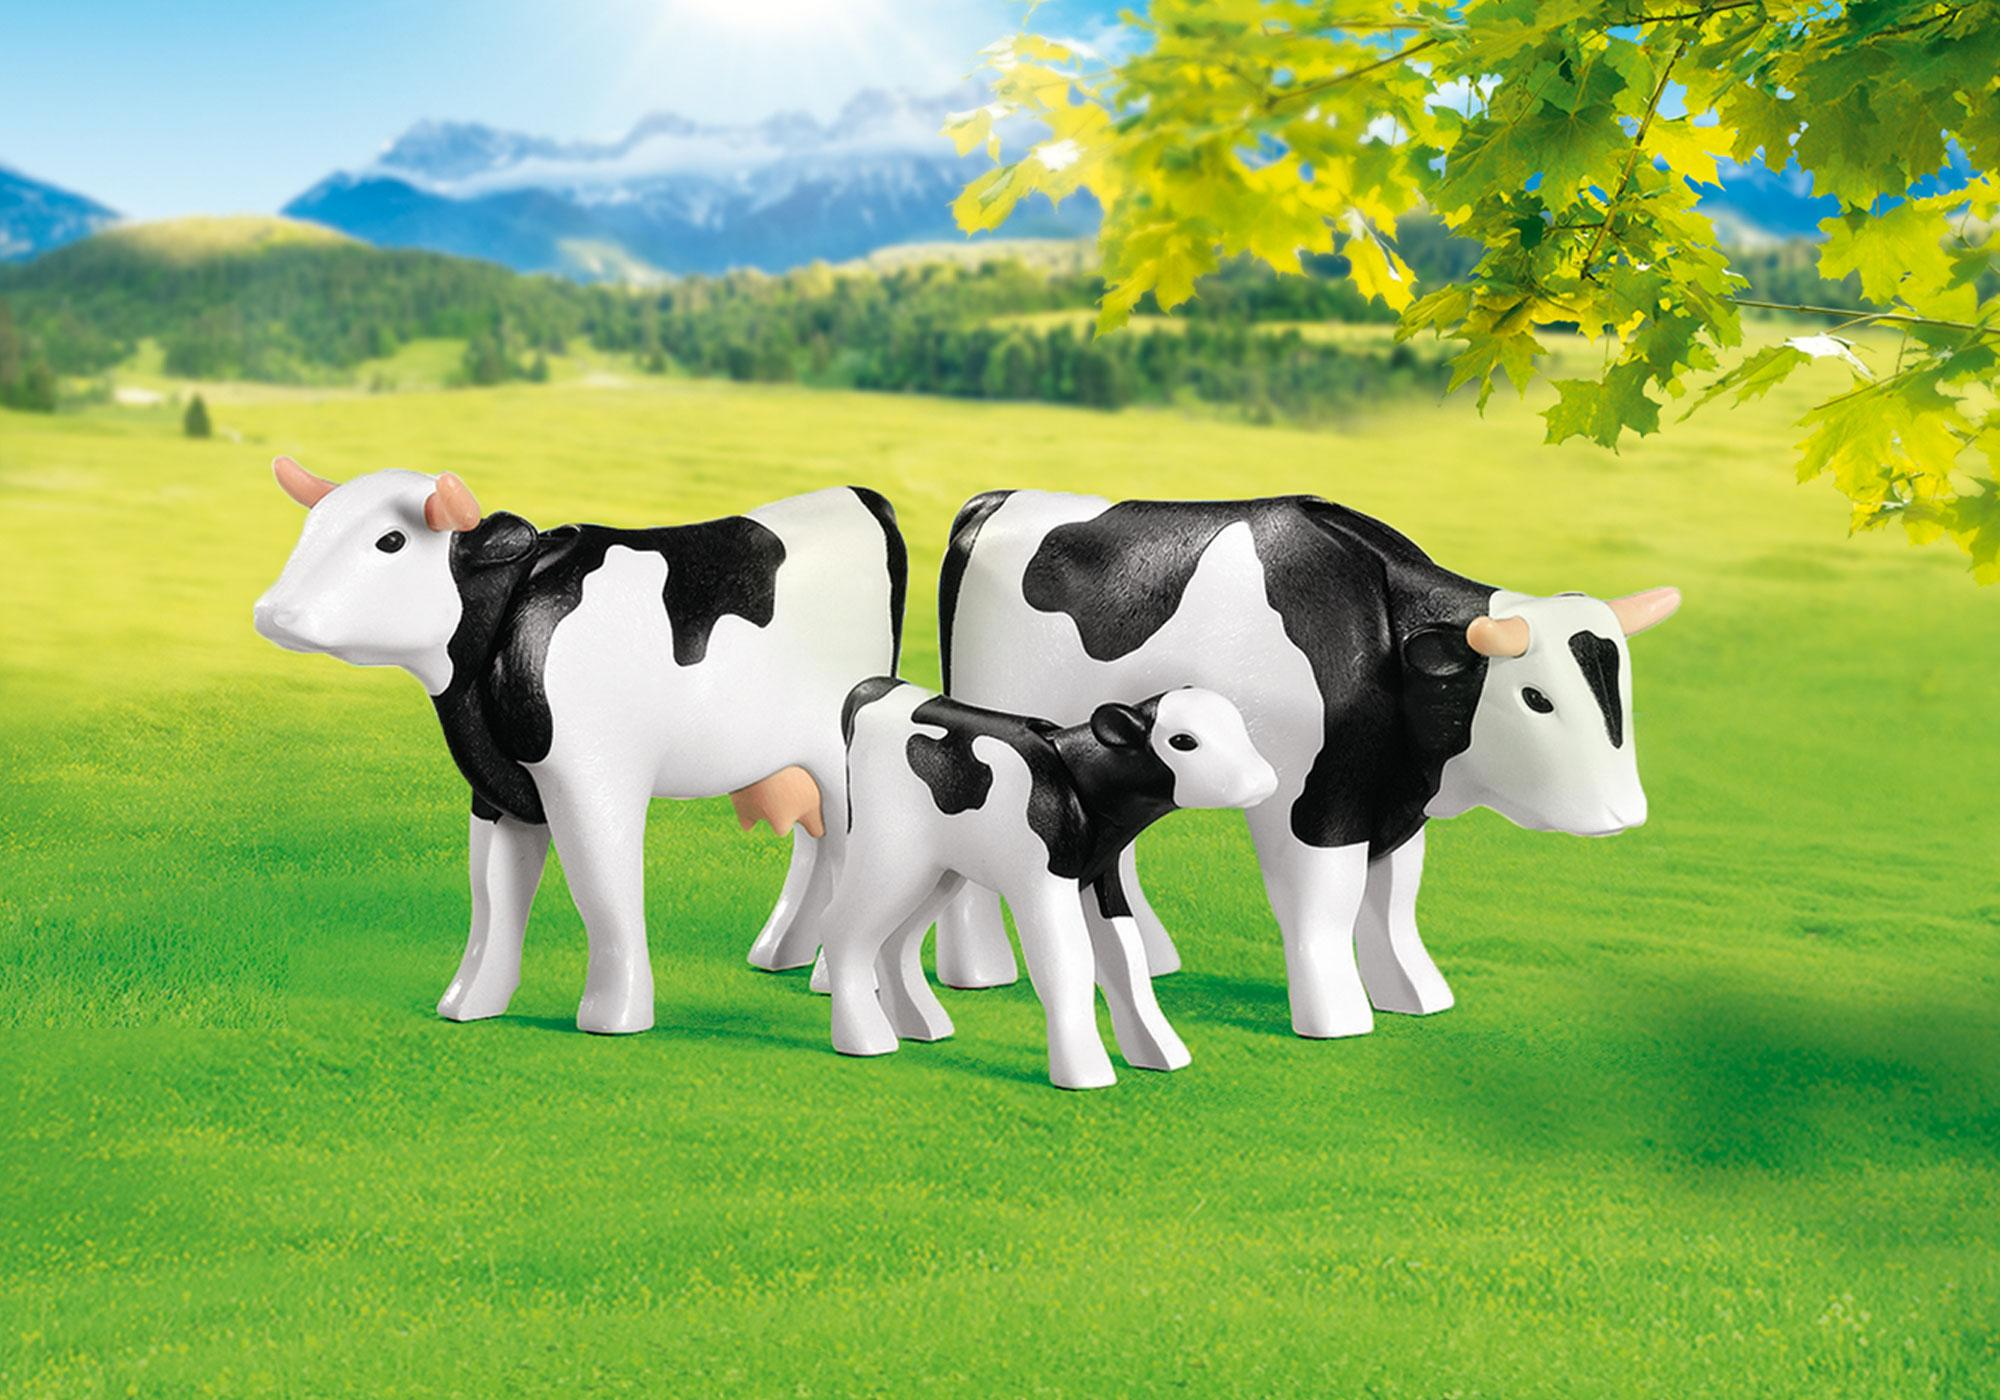 http://media.playmobil.com/i/playmobil/7892_product_detail/2 Cows with Calf (Black/White)